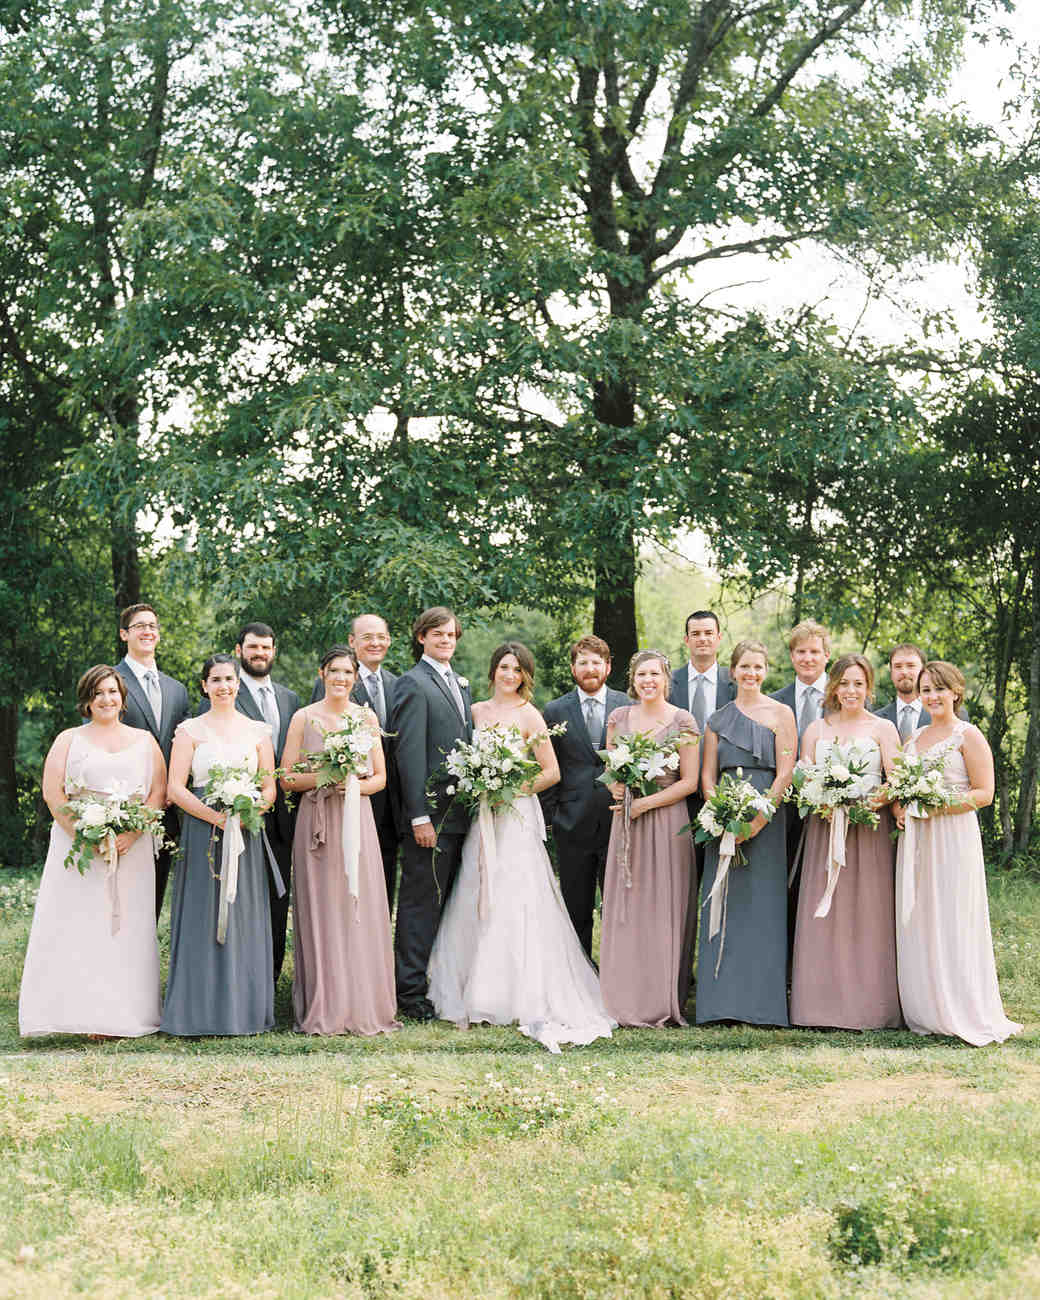 Saron And Neals Rustic Cattle Farm Wedding